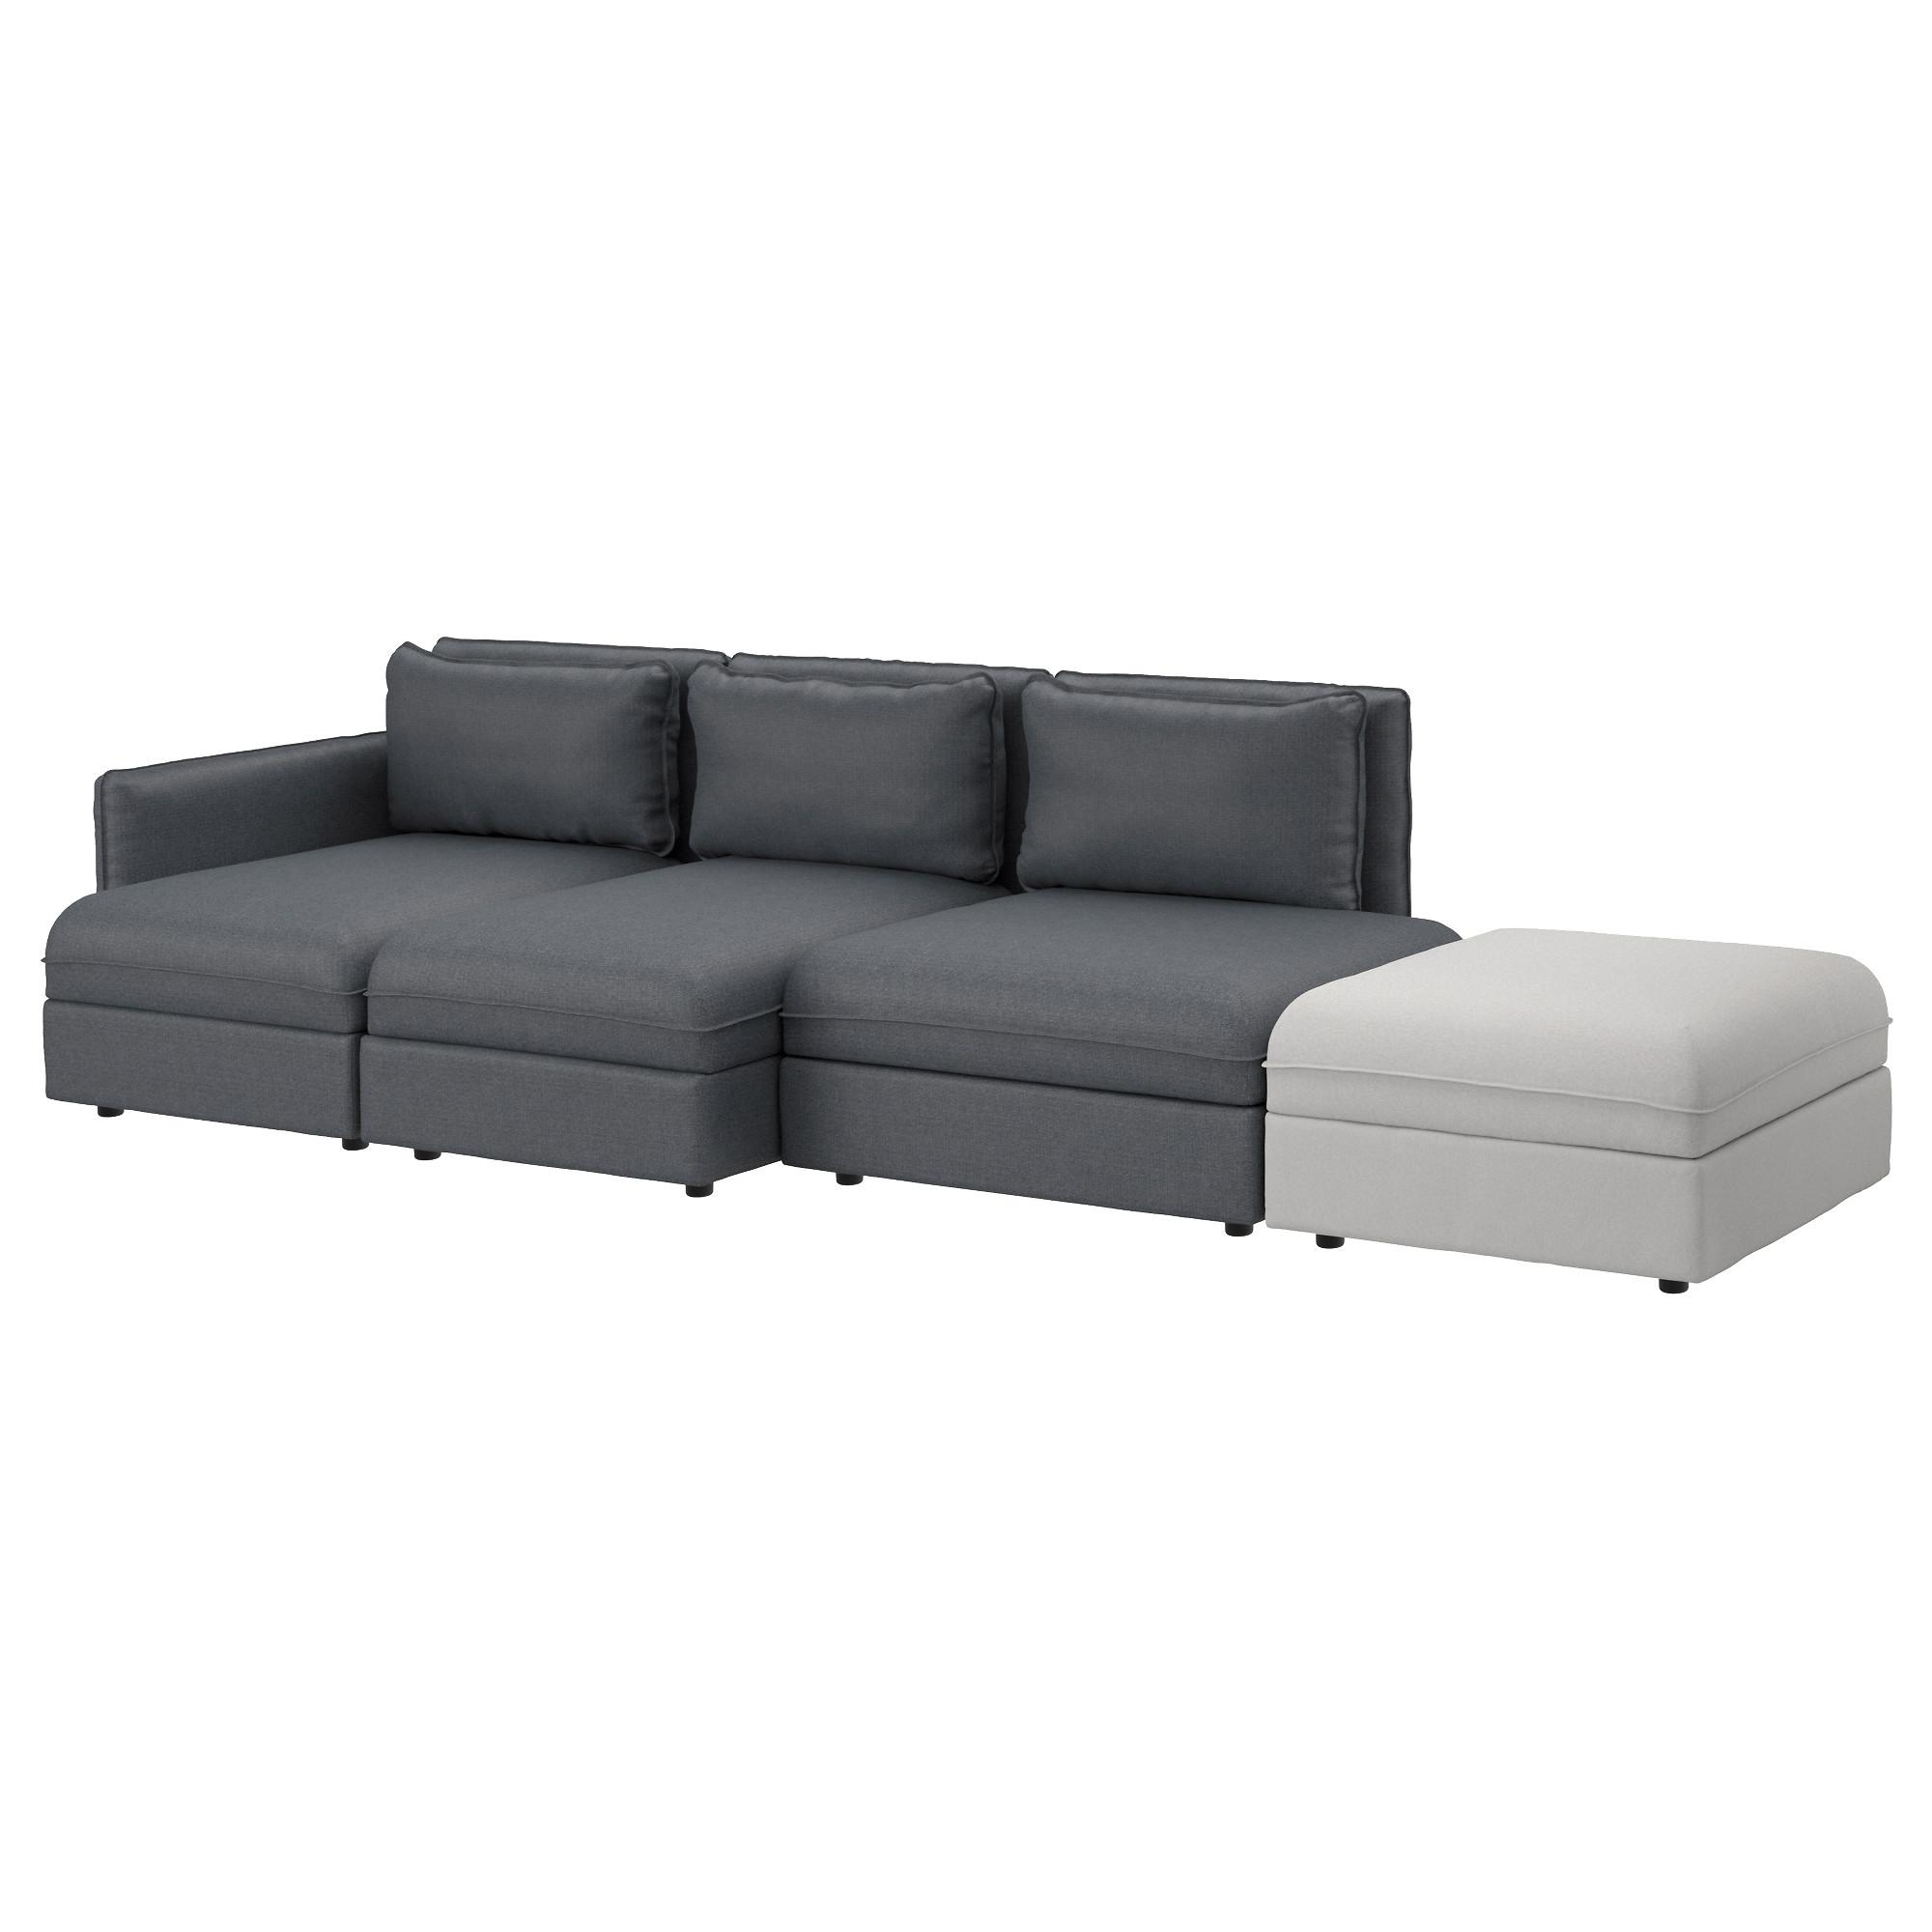 Sectional Sofas & Couches – Ikea With Regard To 2 Seat Sectional Sofas (View 9 of 15)